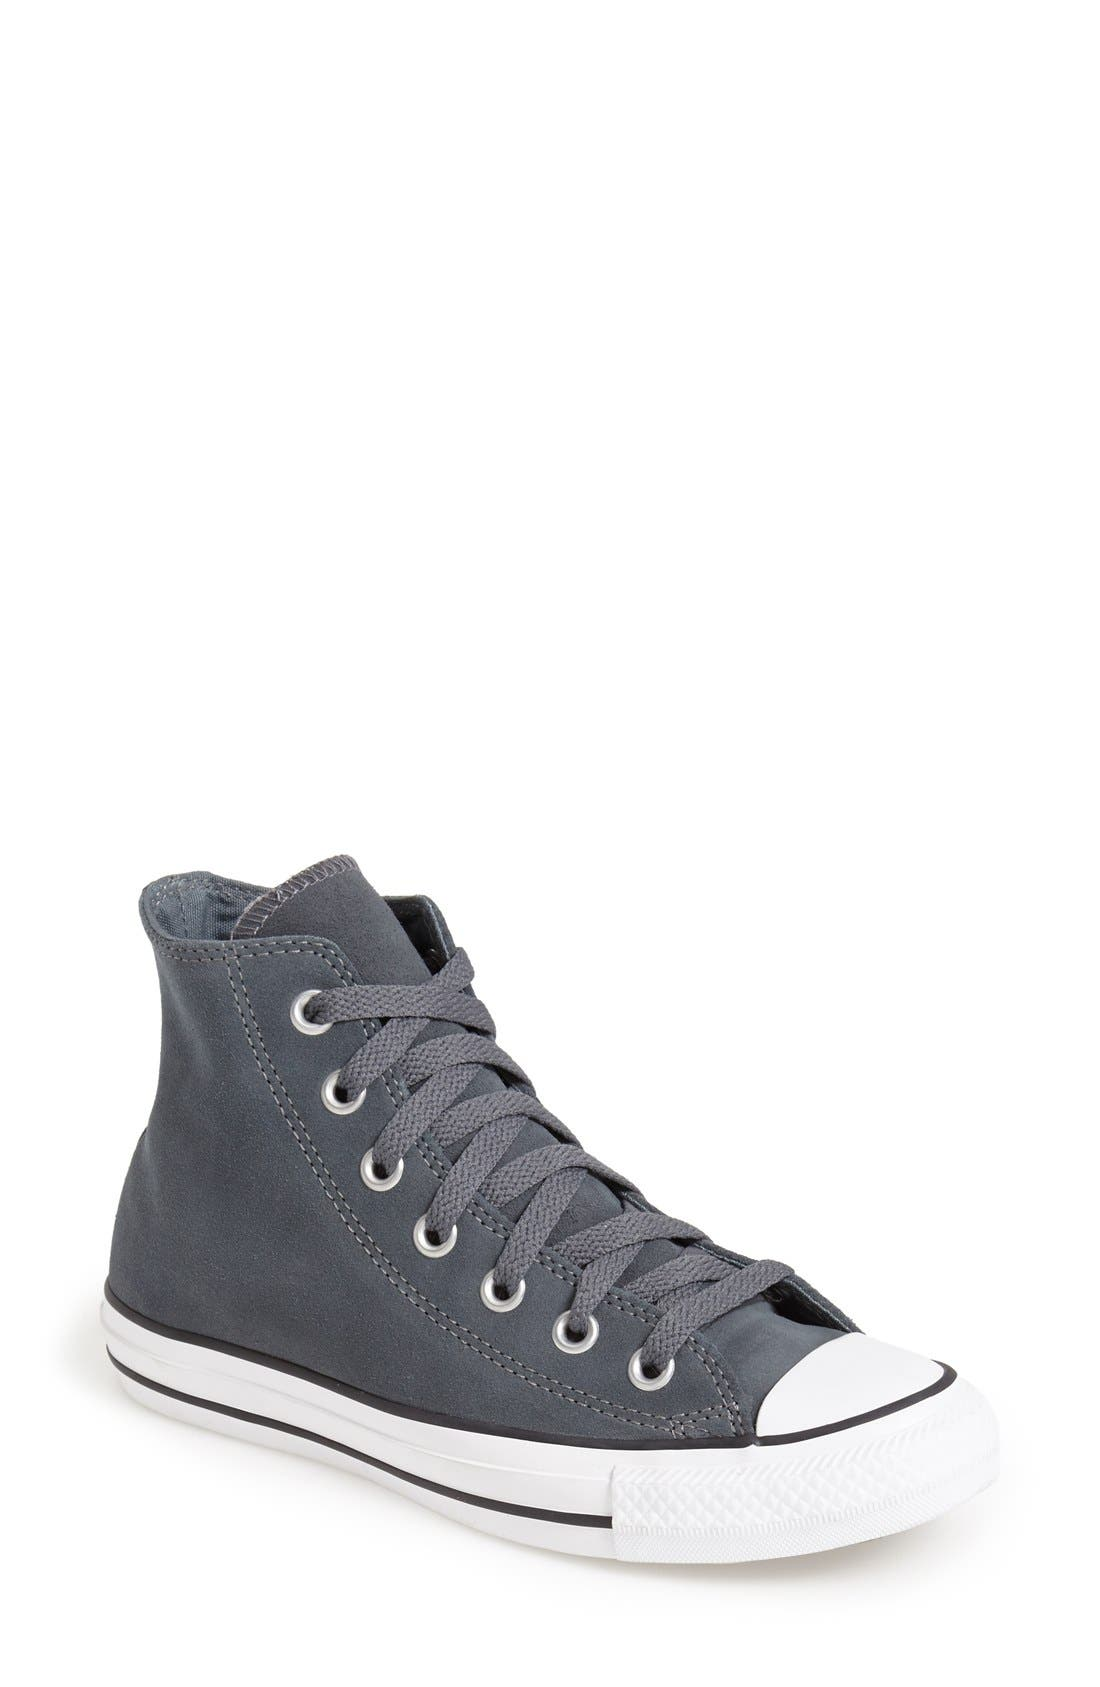 Alternate Image 1 Selected - Converse Chuck Taylor® All Star® Suede High Top Sneaker (Women)